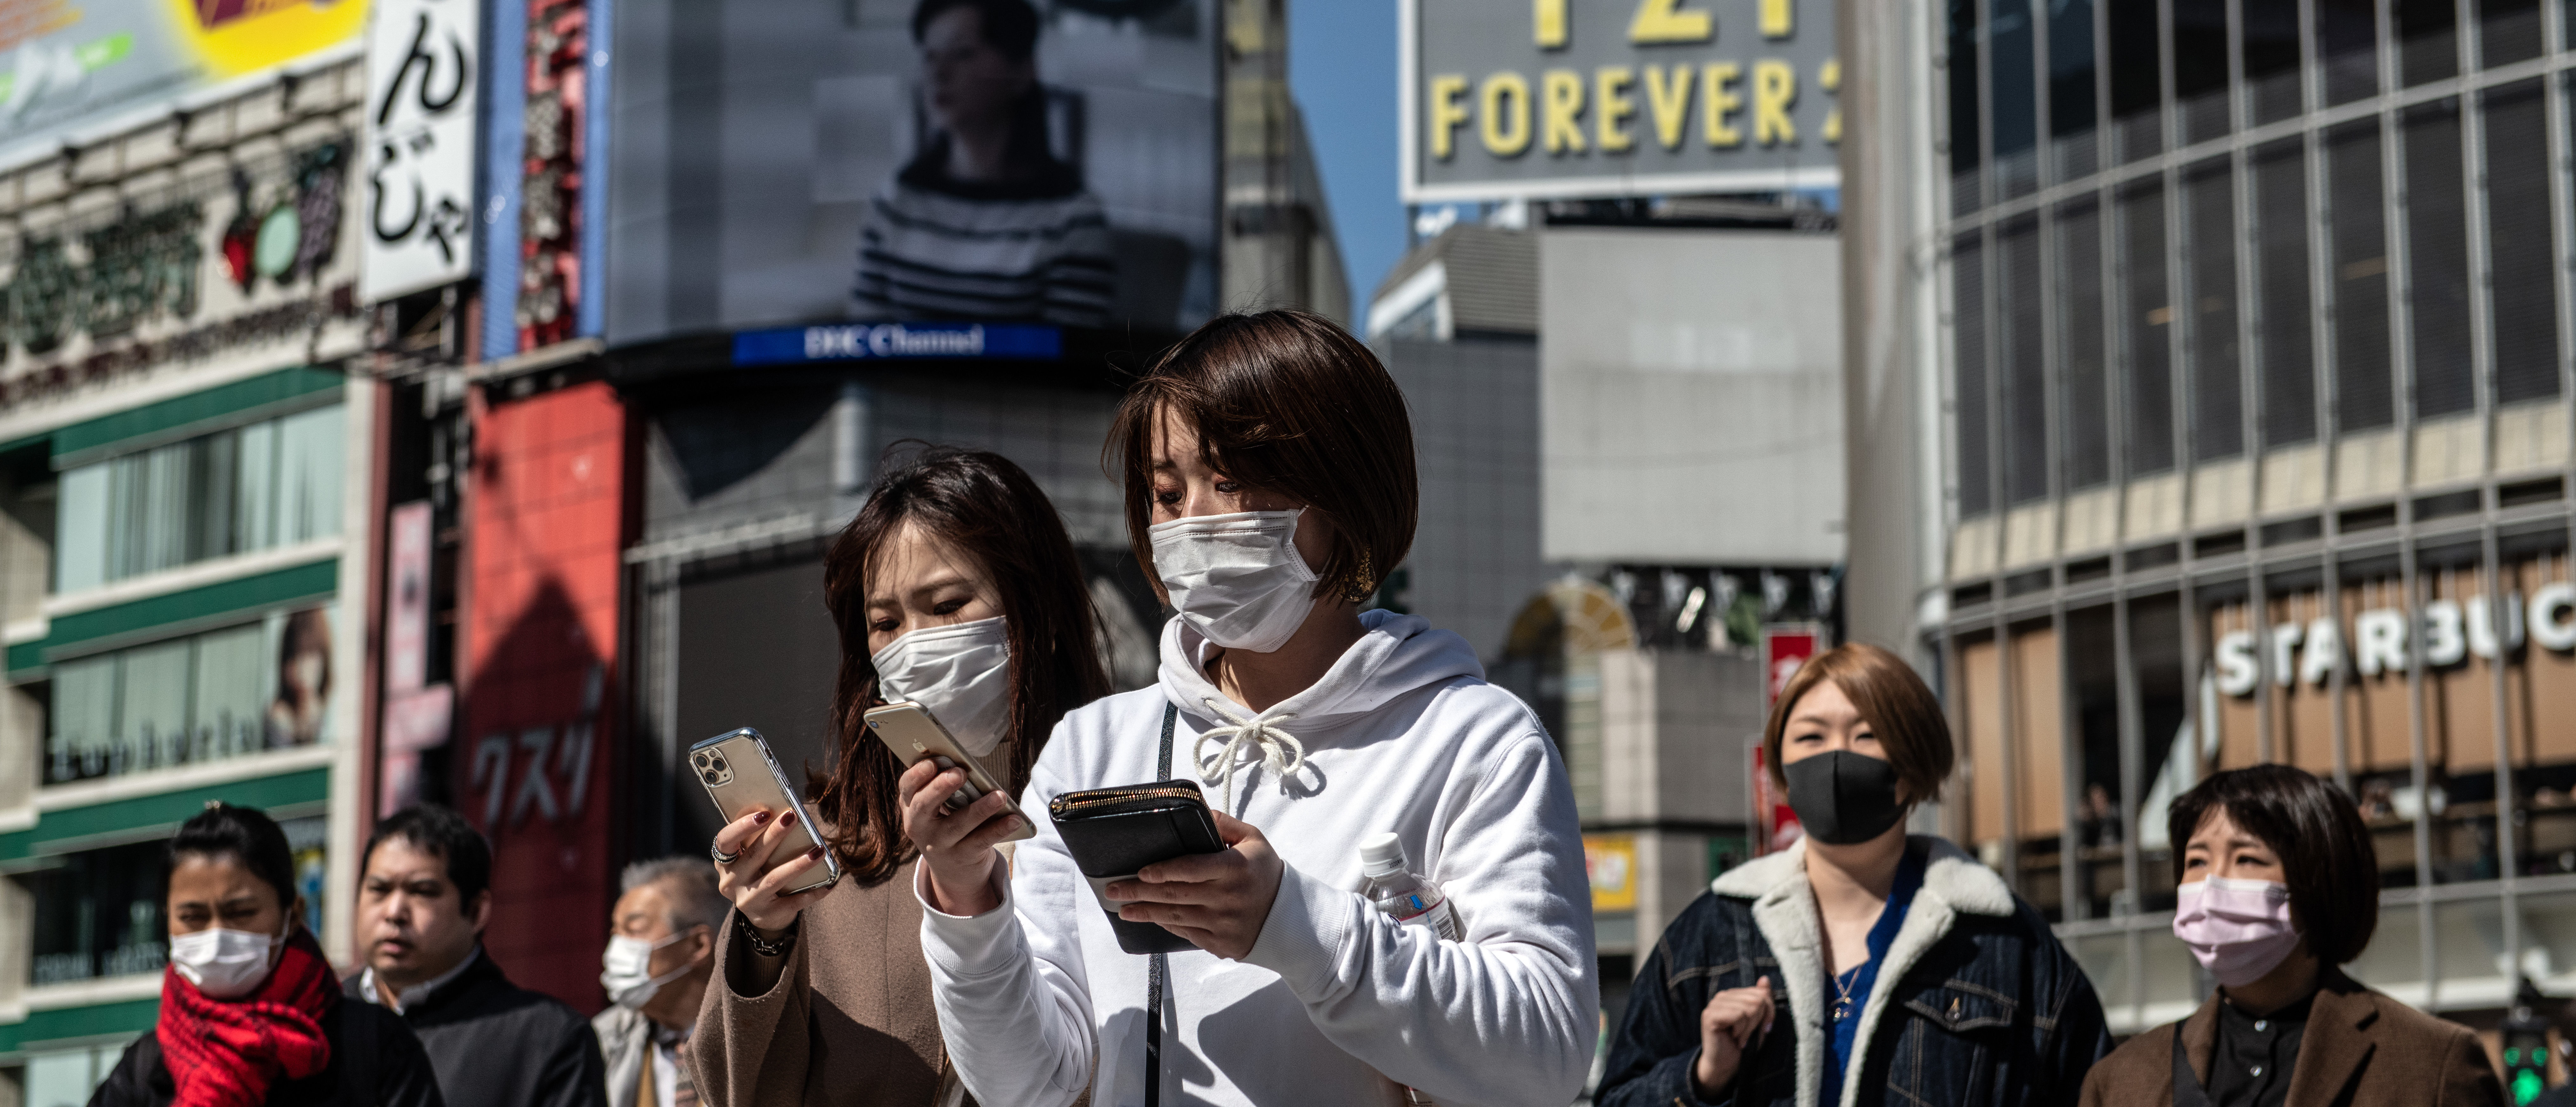 Students In LA County Will Have To Wear Face Masks At All Times Under New Plan For Reopening